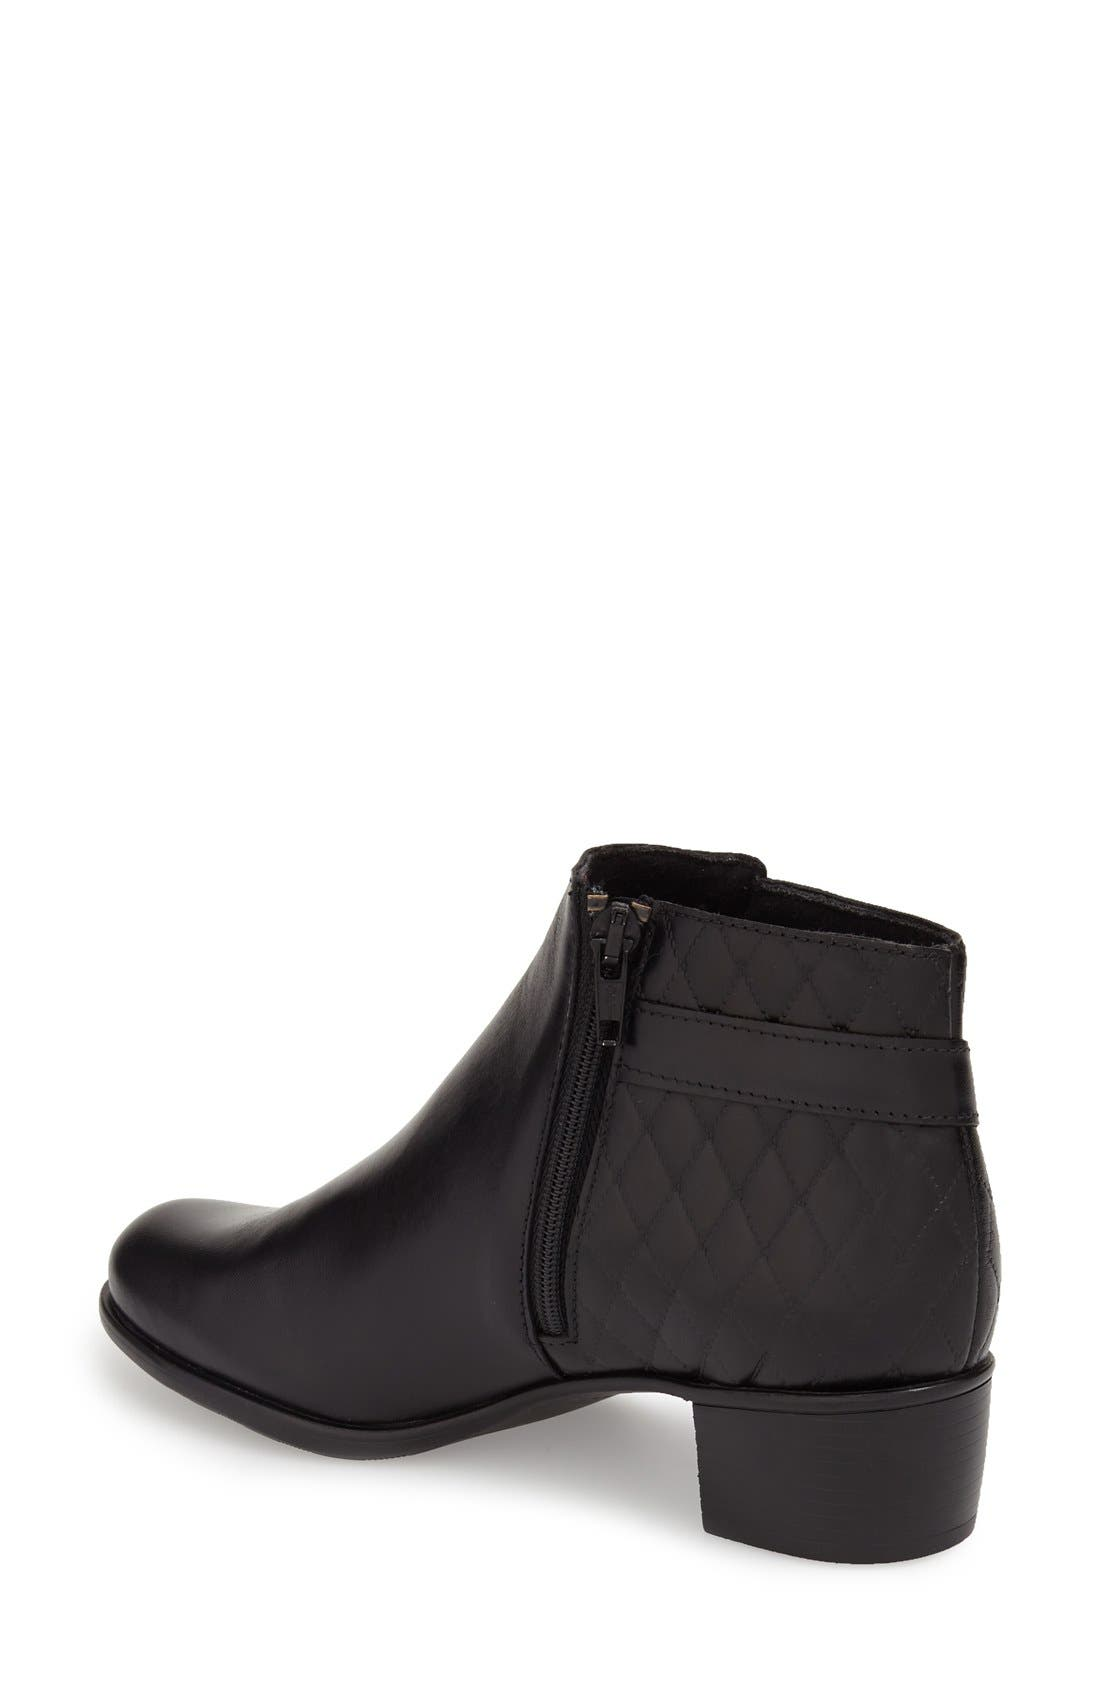 'Jolynn' Bootie,                             Alternate thumbnail 2, color,                             Black Quilted Leather